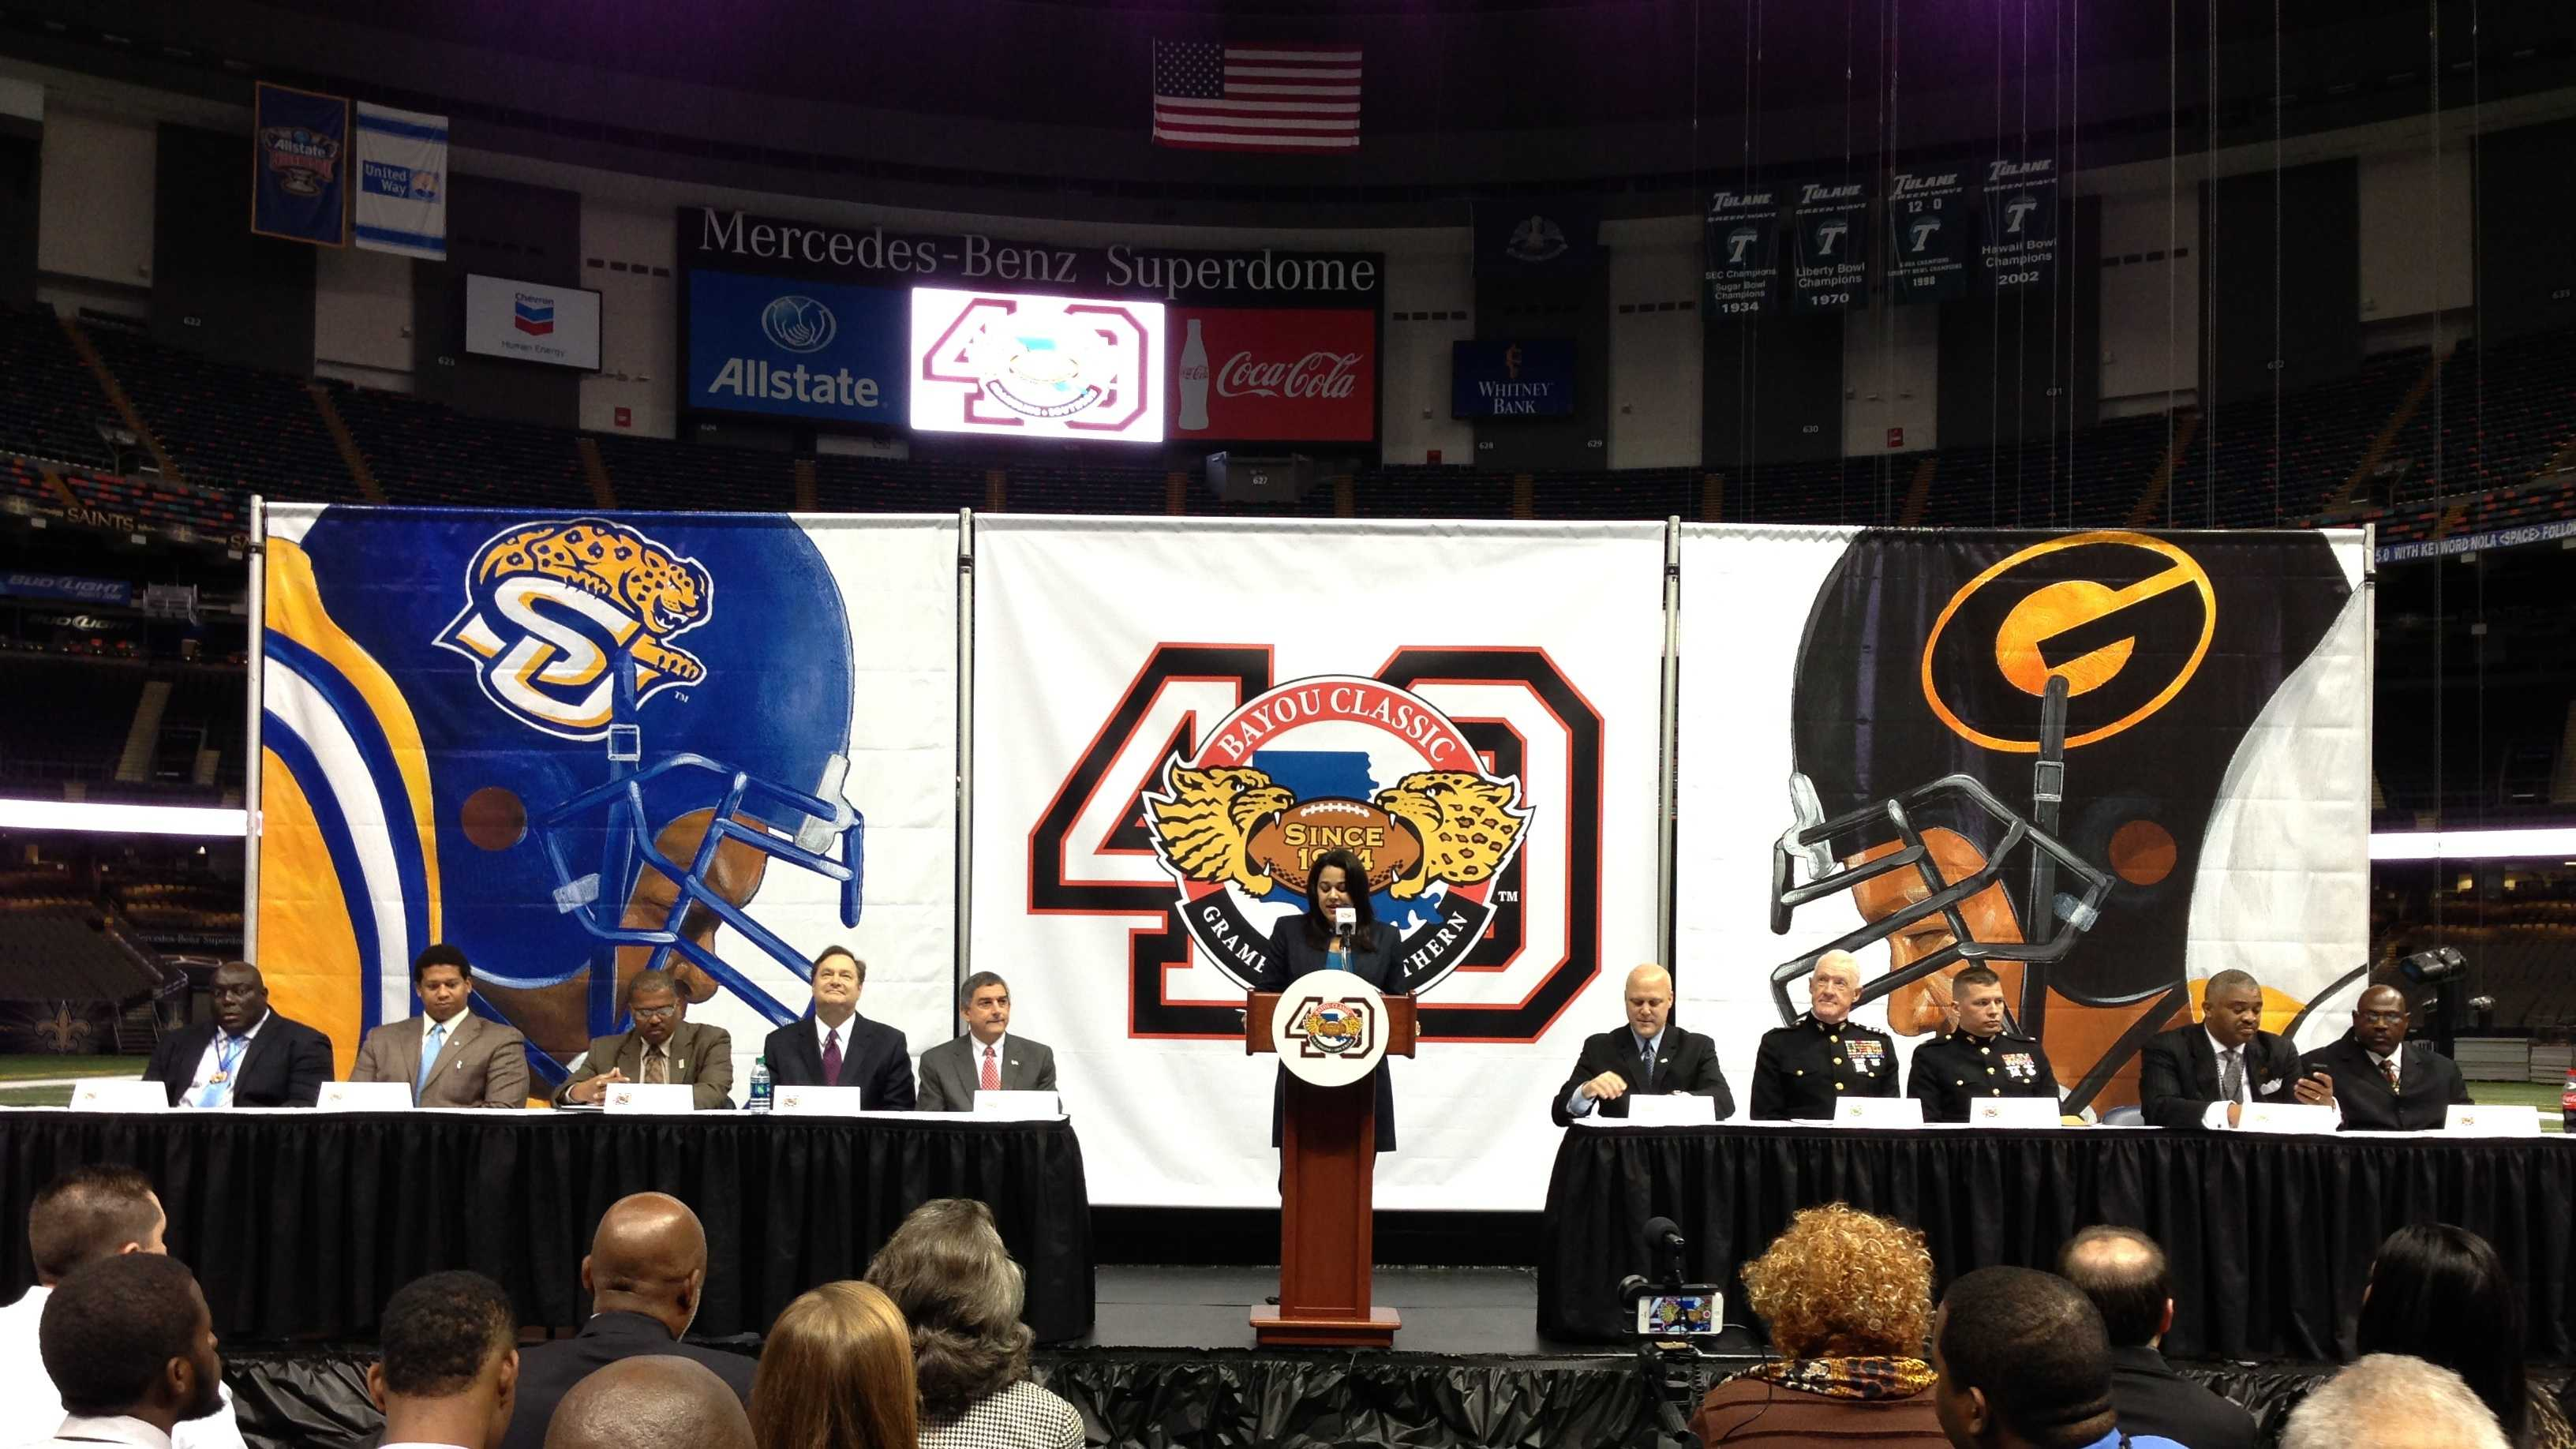 Bayou Classic press conference